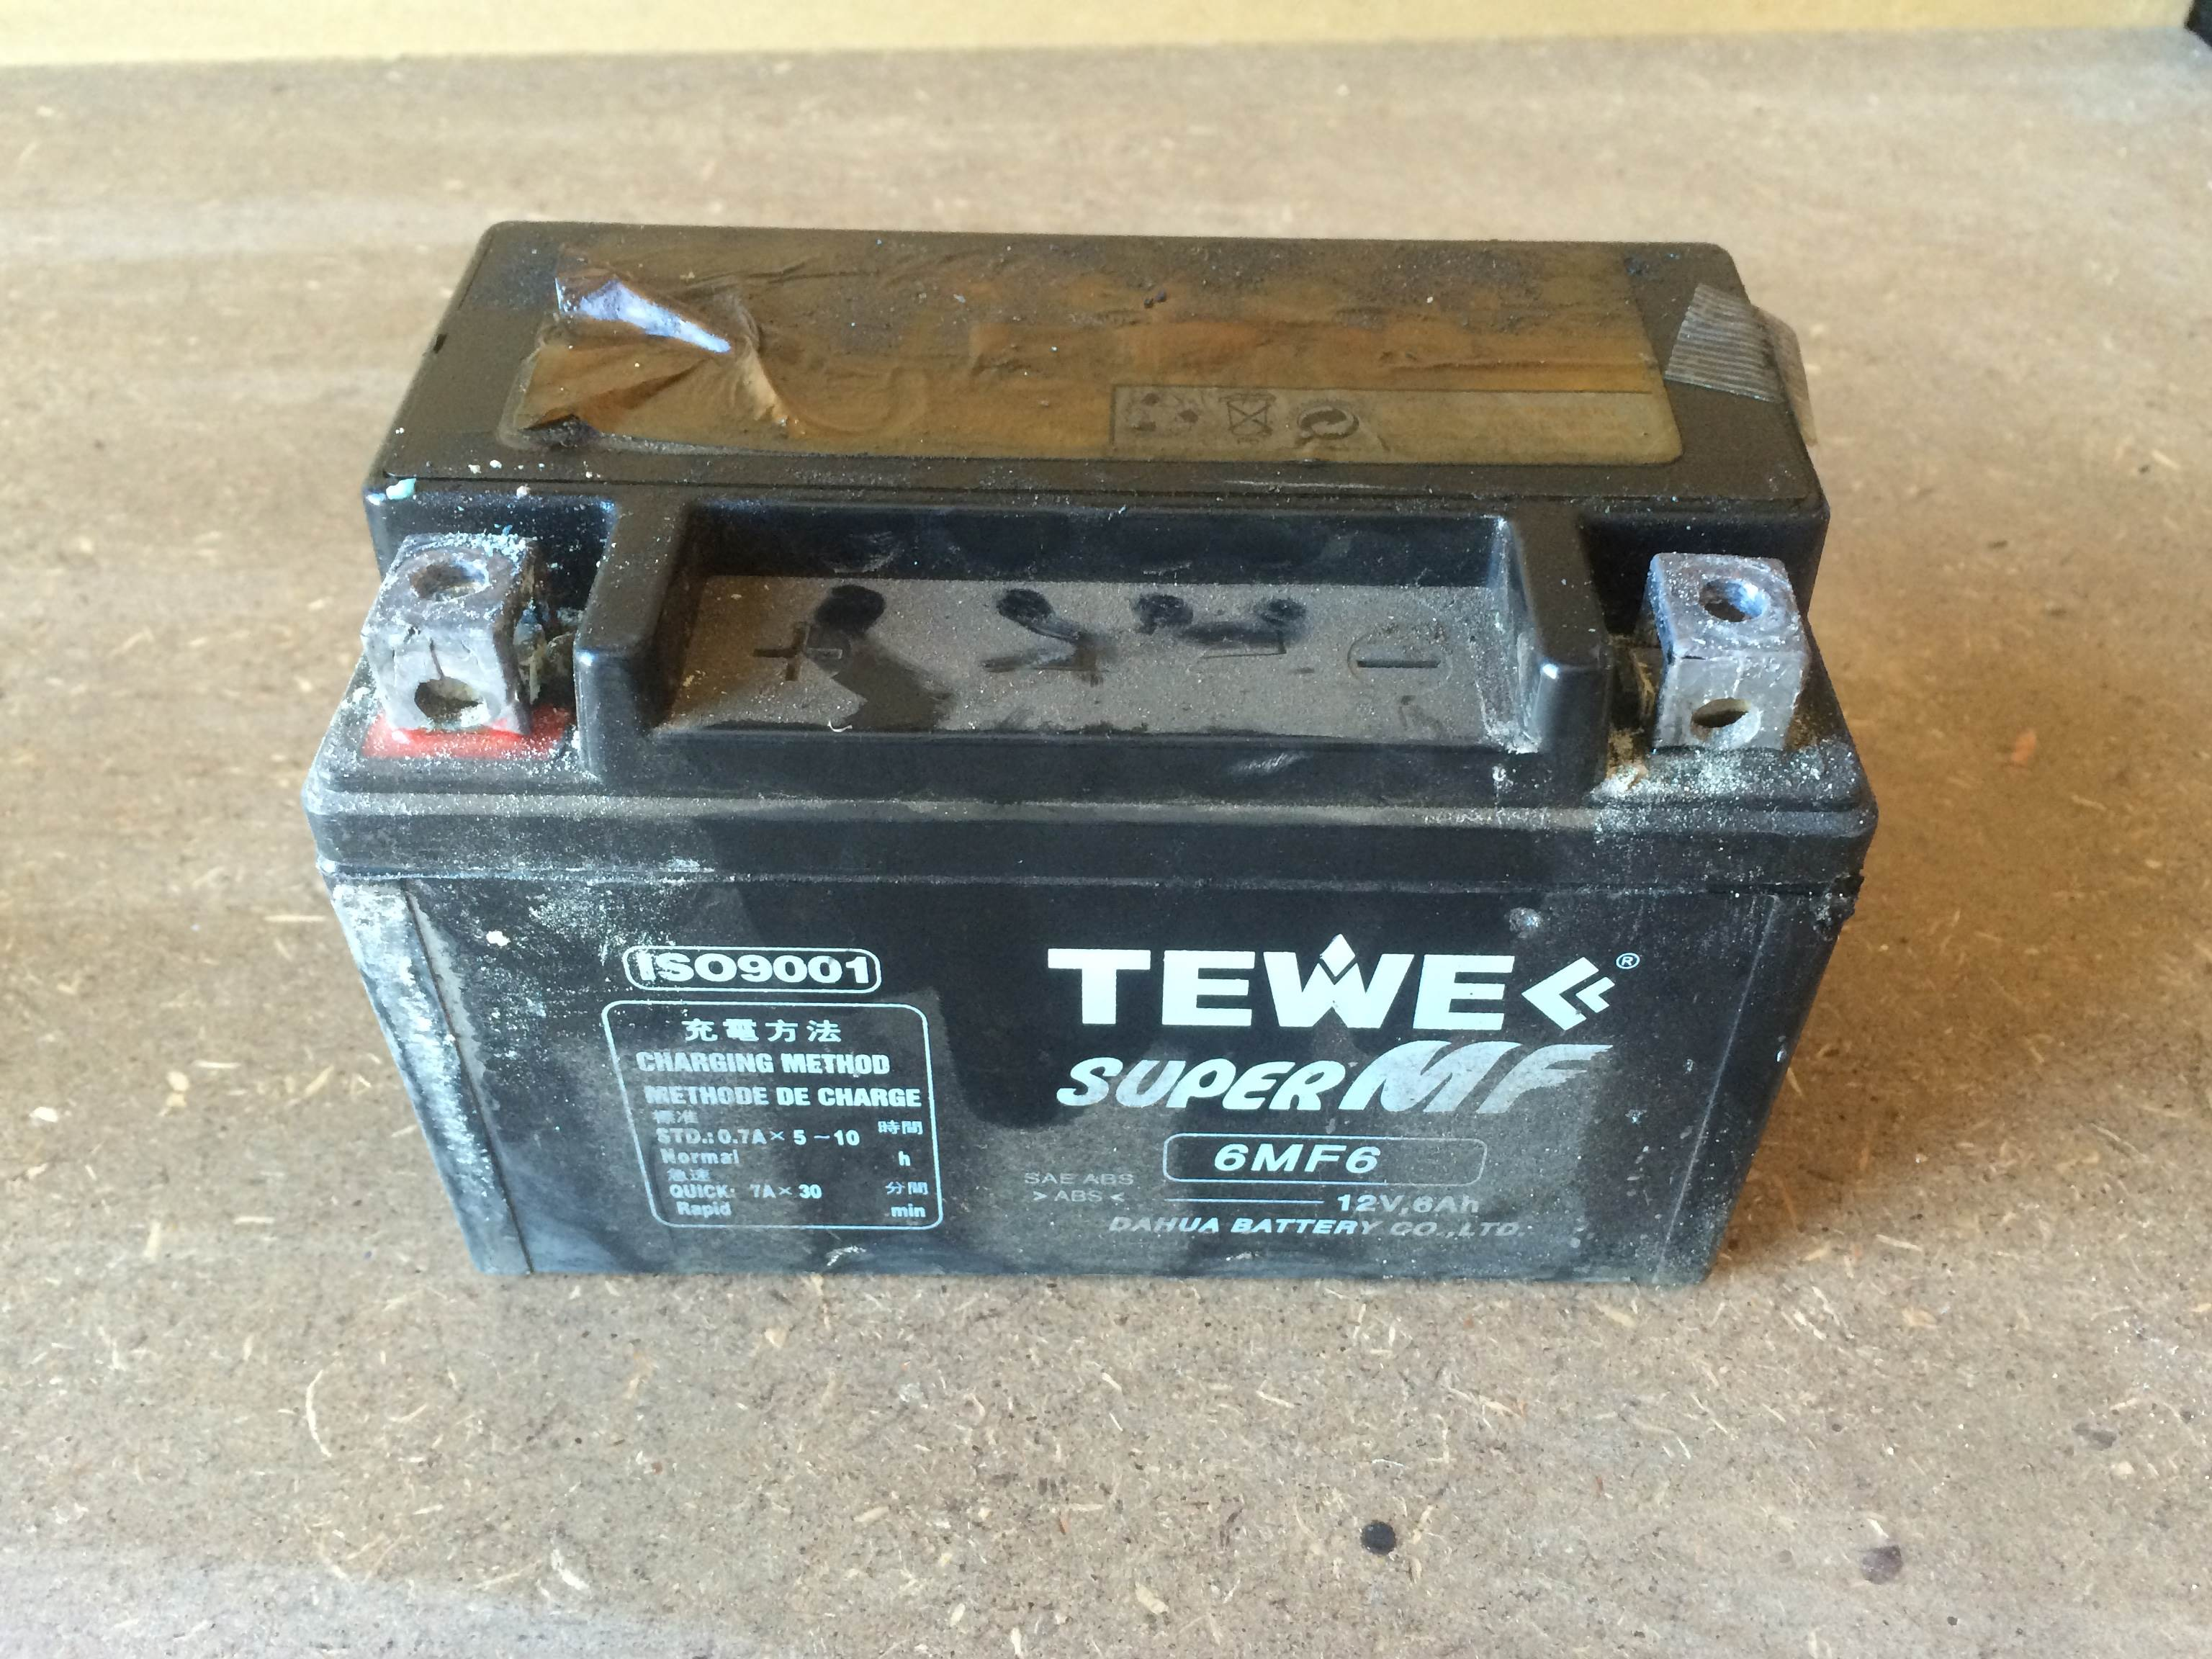 Recondition a Lead Acid Battery, Don't Buy A New One | The